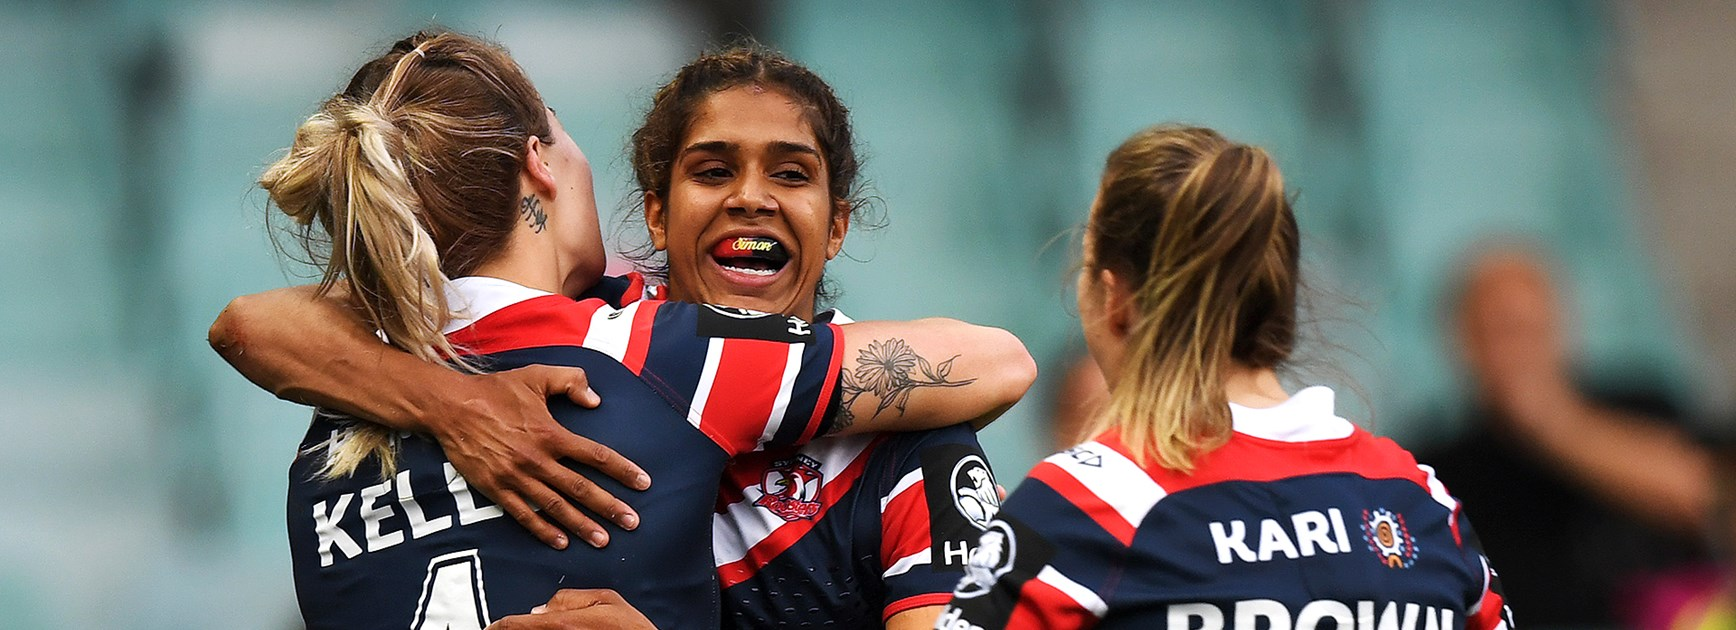 Simon scores four as Roosters reach NRLW decider